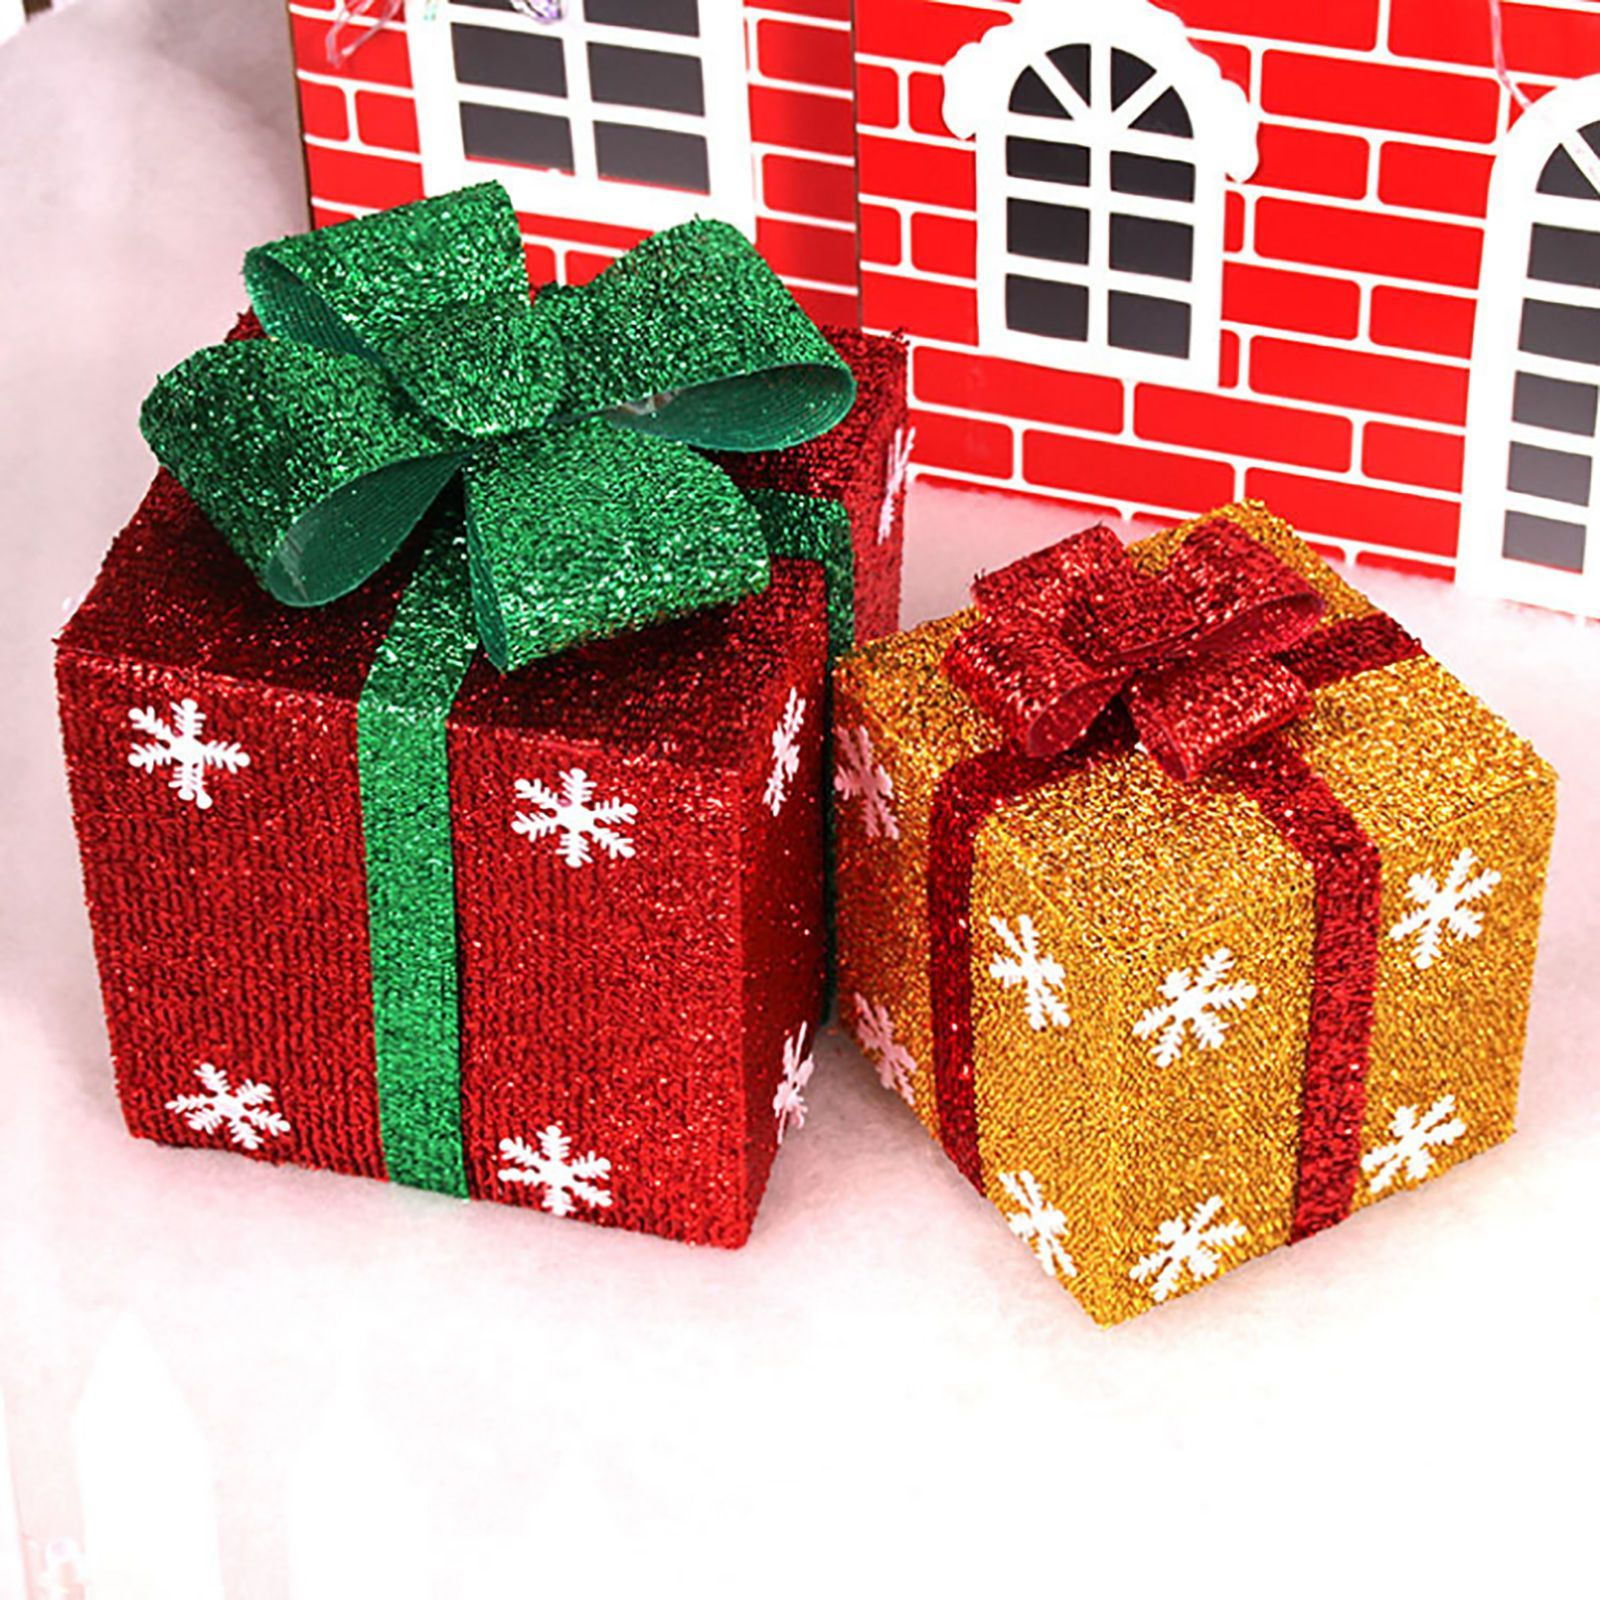 Gift Box Christmas Decorations 152025Cm Detachable Xmas Gift Boxes Christmas Present Packing